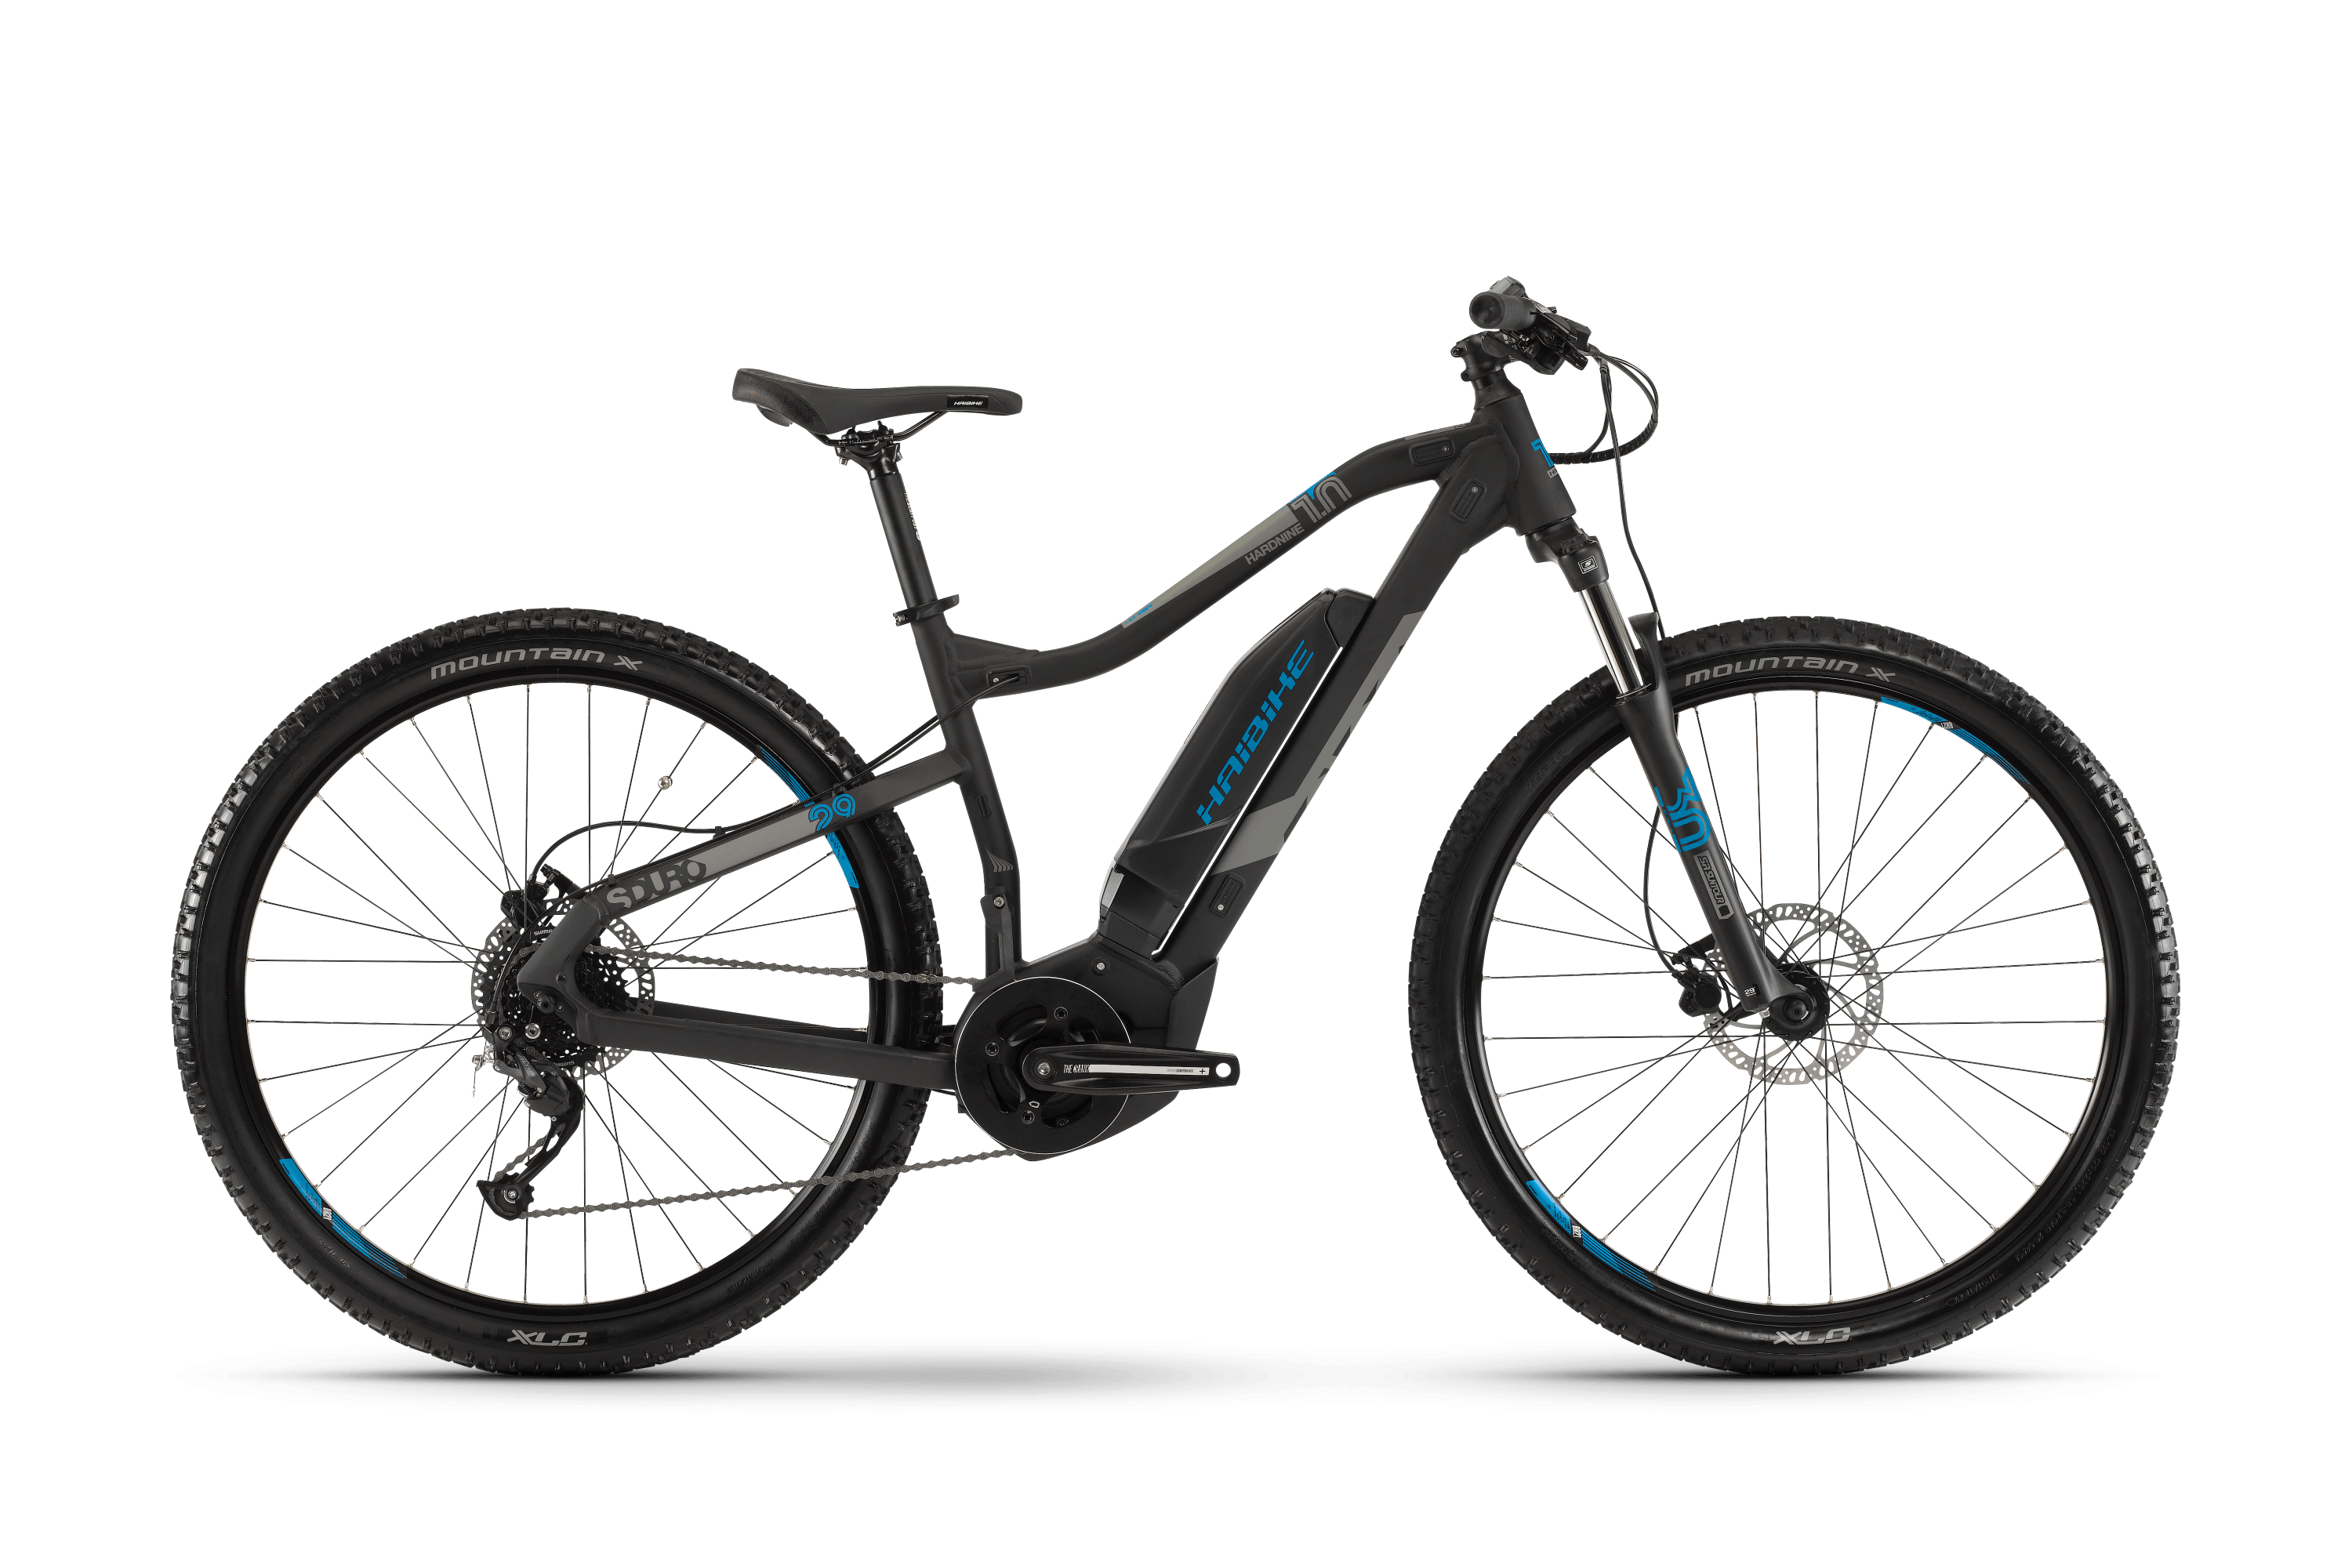 https://www.ovelo.fr/11996-thickbox_extralarge/vtt-electrique-haibike-sduro-hardnine-10.jpg